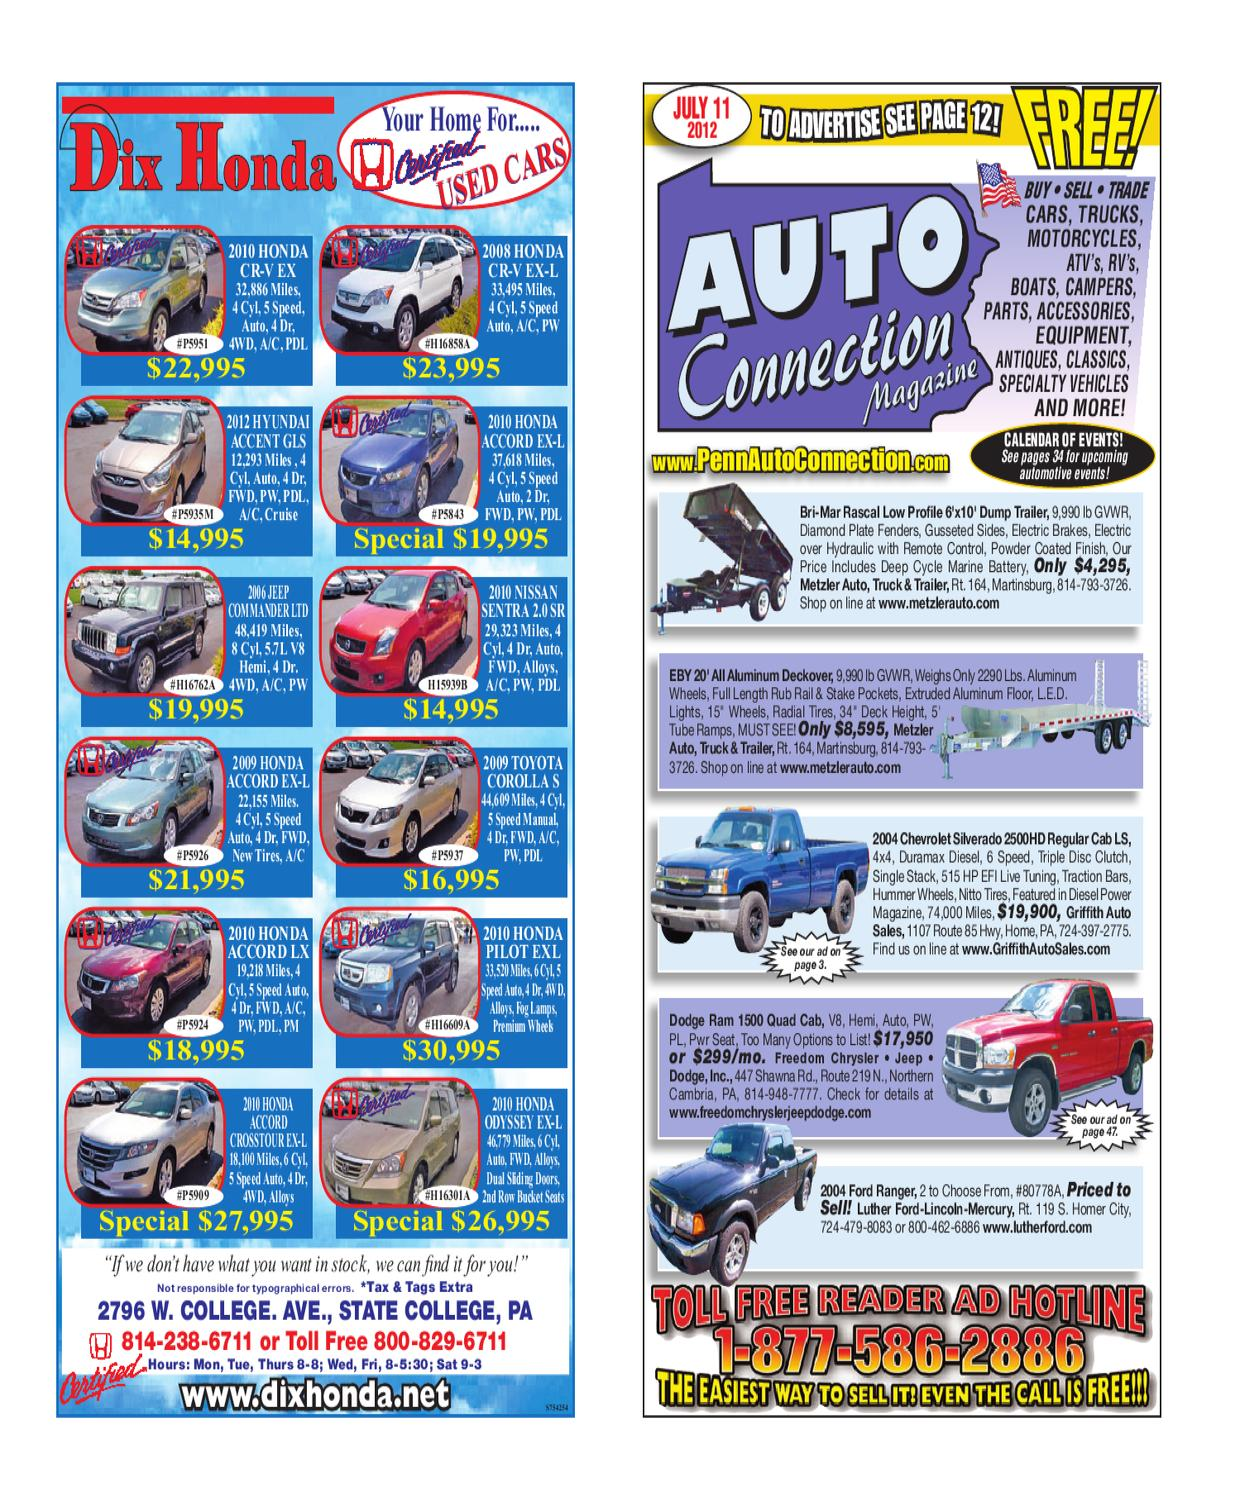 07 11 12 Auto Connection Magazine By Issuu Chevy Truck Clutch Linkage Diagram Car Tuning